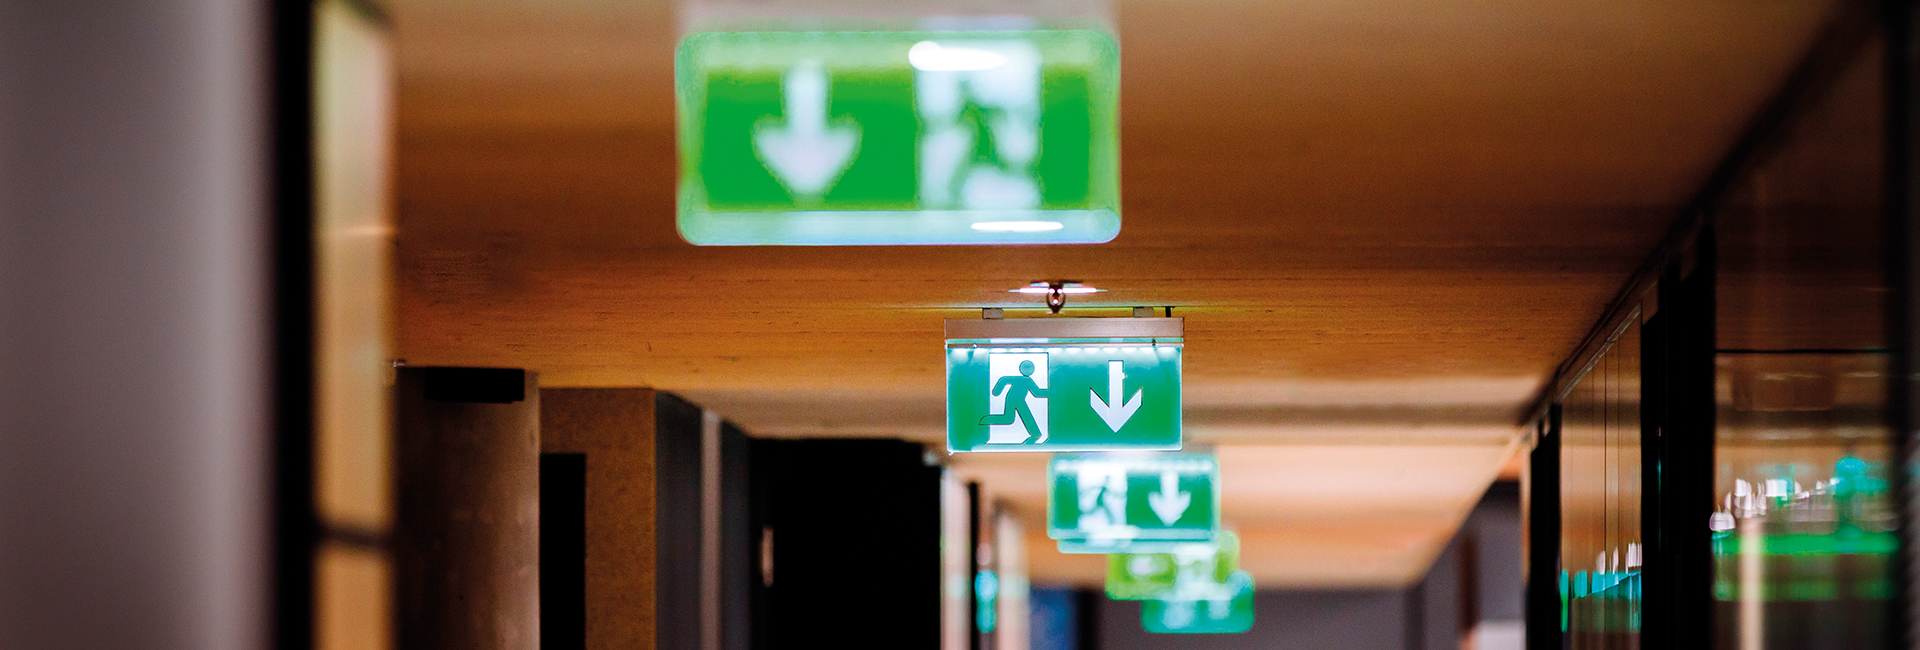 Show products in category Aurora launches Emergency Lighting Range